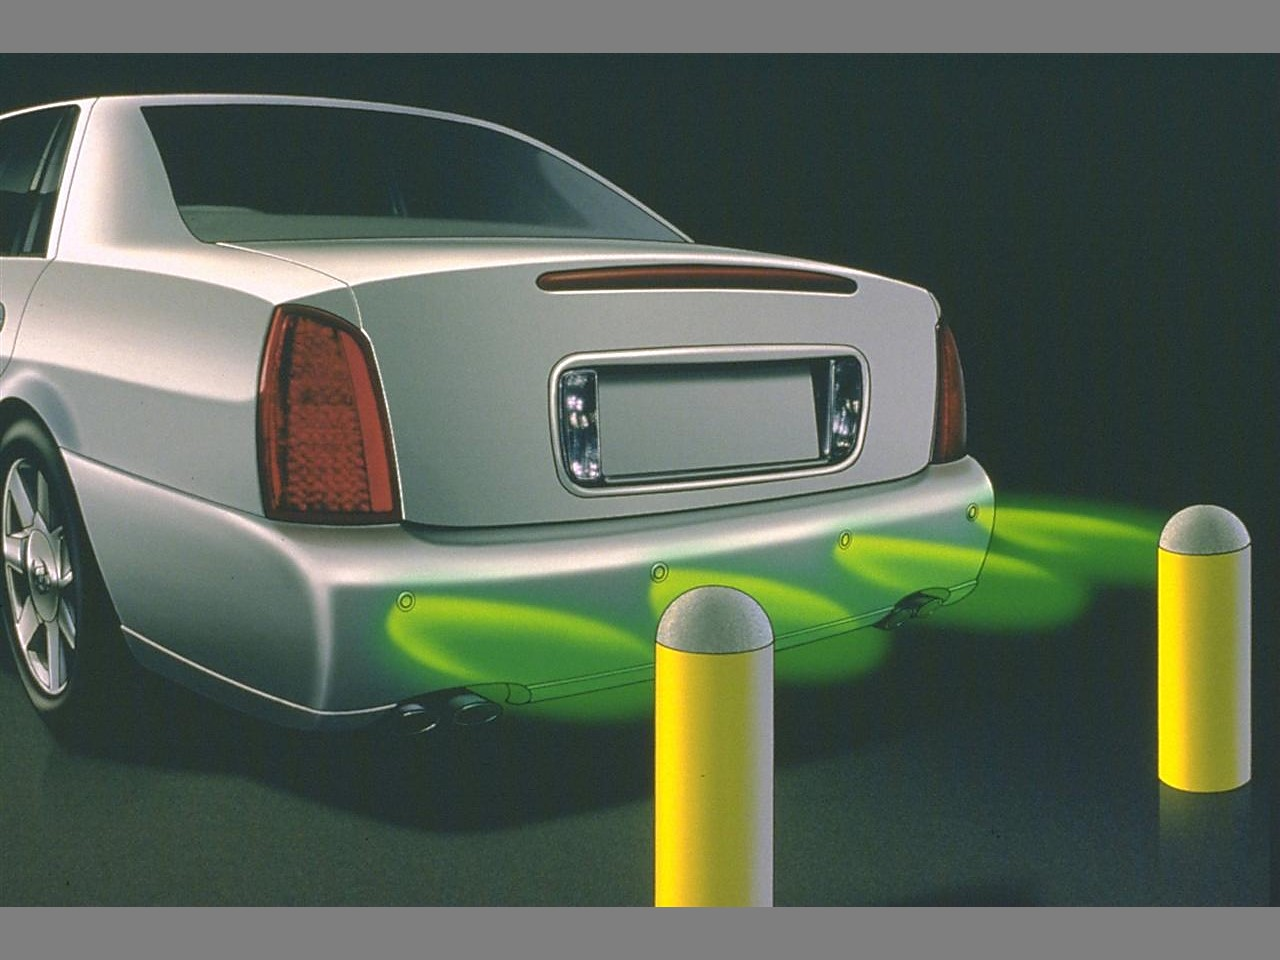 Ultrasonic rear parking assist